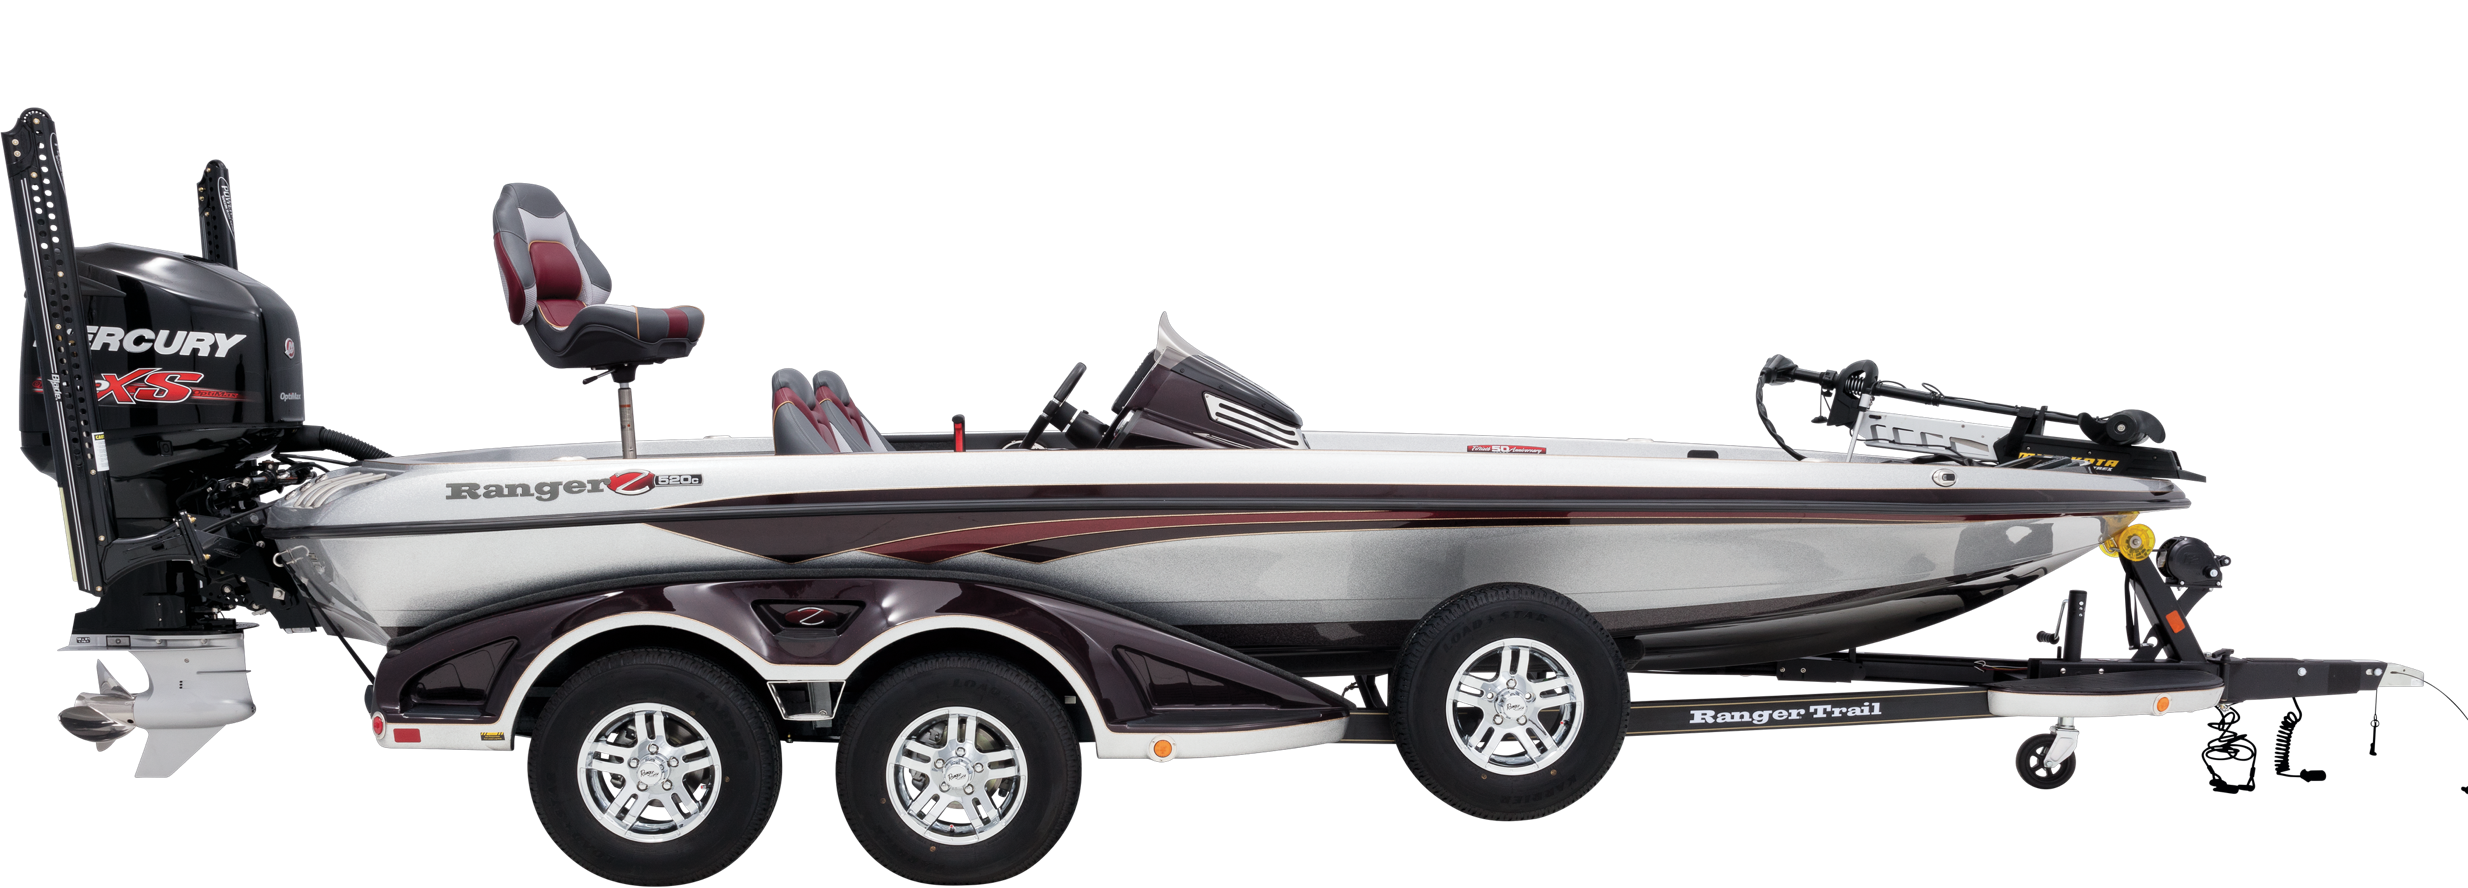 Ranger Boats Bass Boats & Recreational Fishing Boats